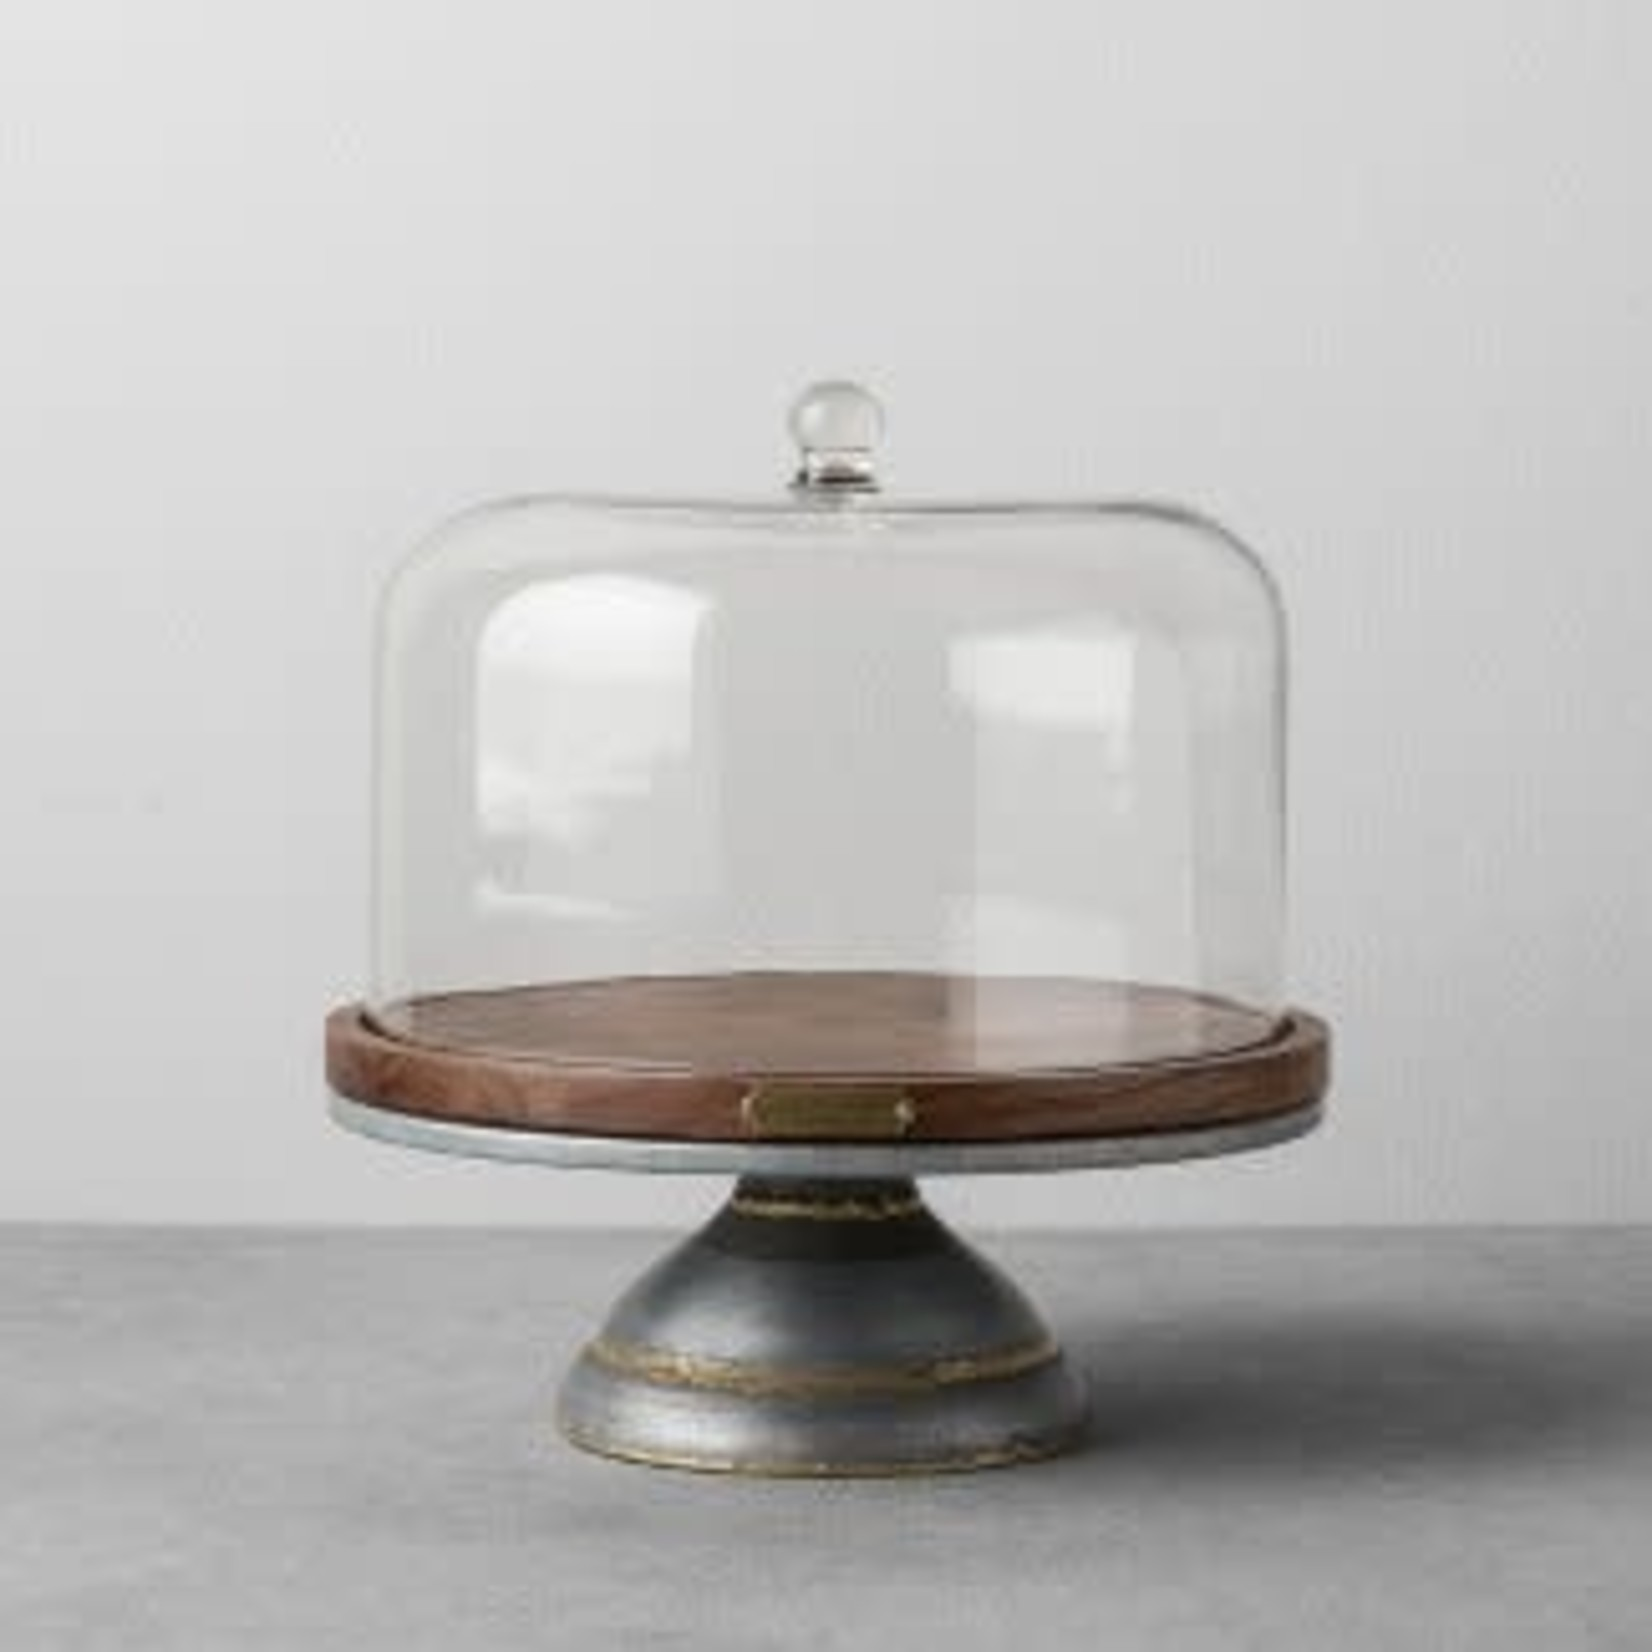 Wood & Metal Covered Cake Stand - Hearth & Hand™ with Magnolia